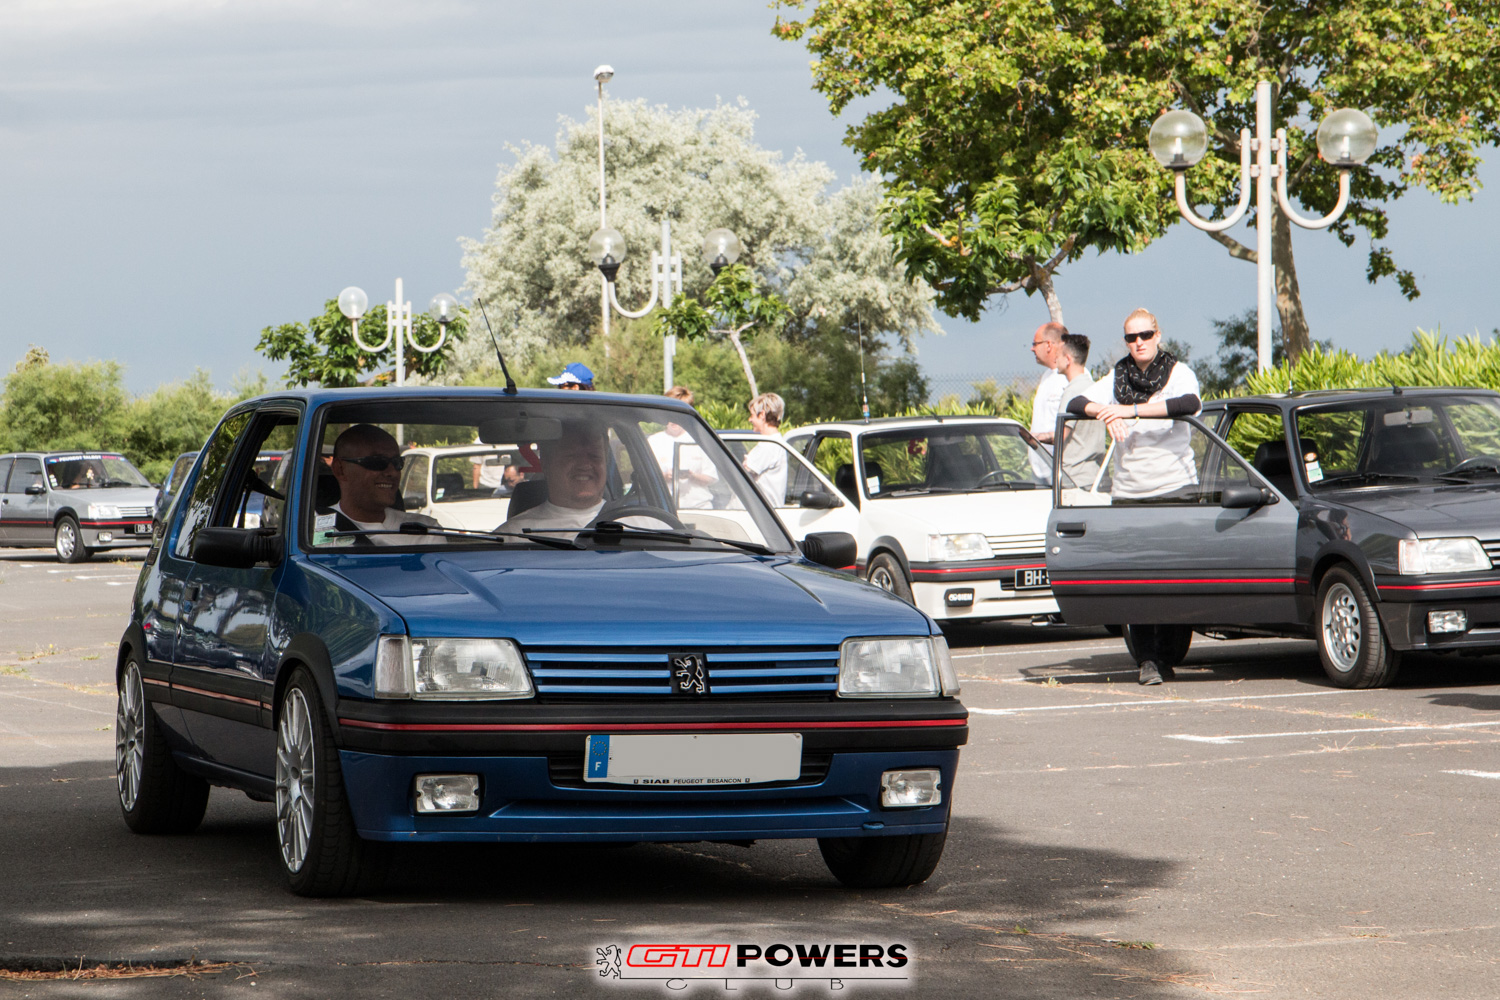 [GTIPOWERS DAYS] Nationale #4 - 8-9-10 Juin 2019 - Beziers - Page 8 Gtipow67